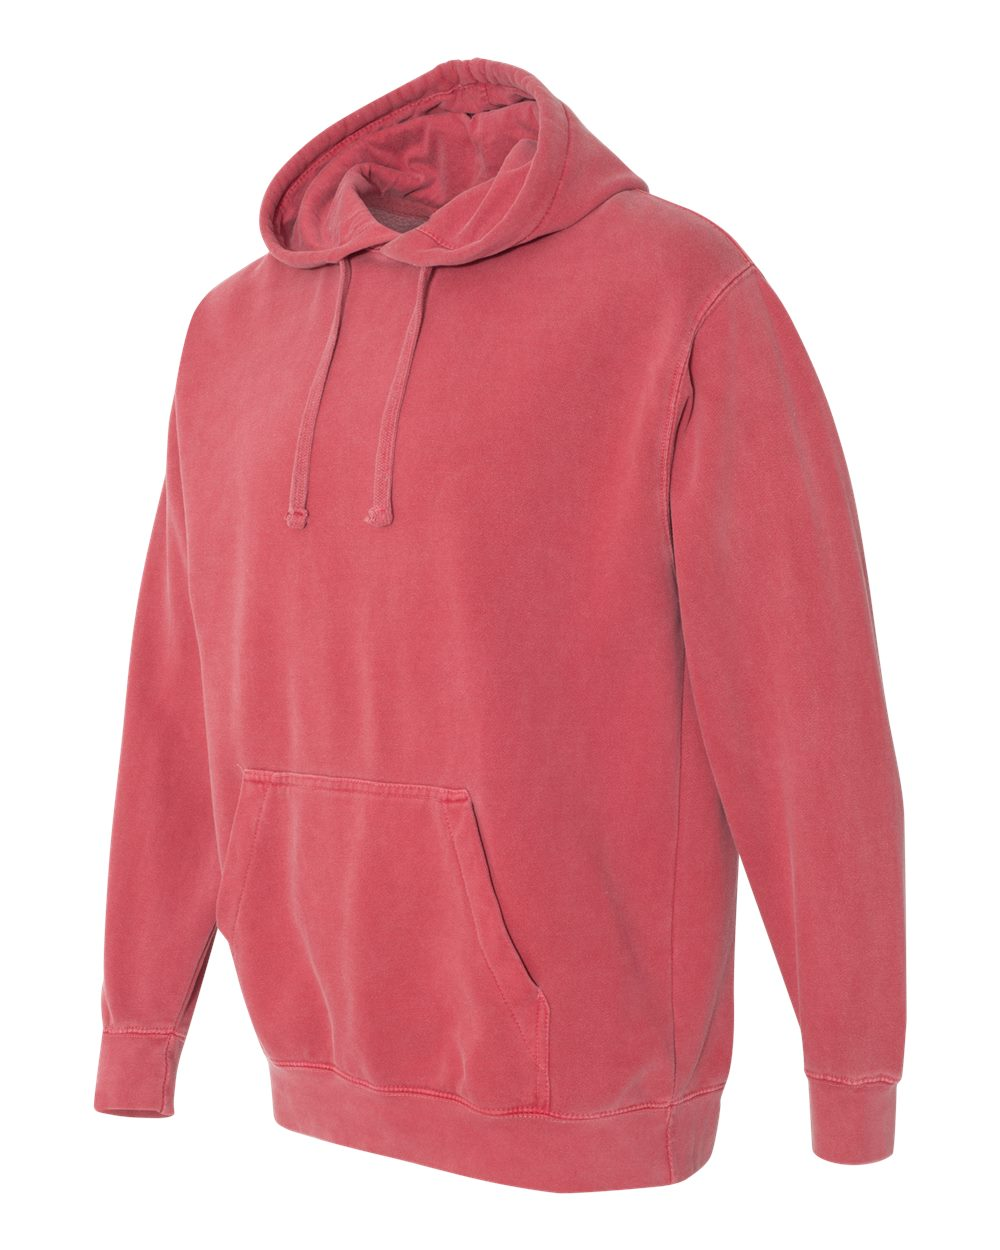 Comfort Colors, Garment Dyed Hooded Pullover Sweatshirt - $$$